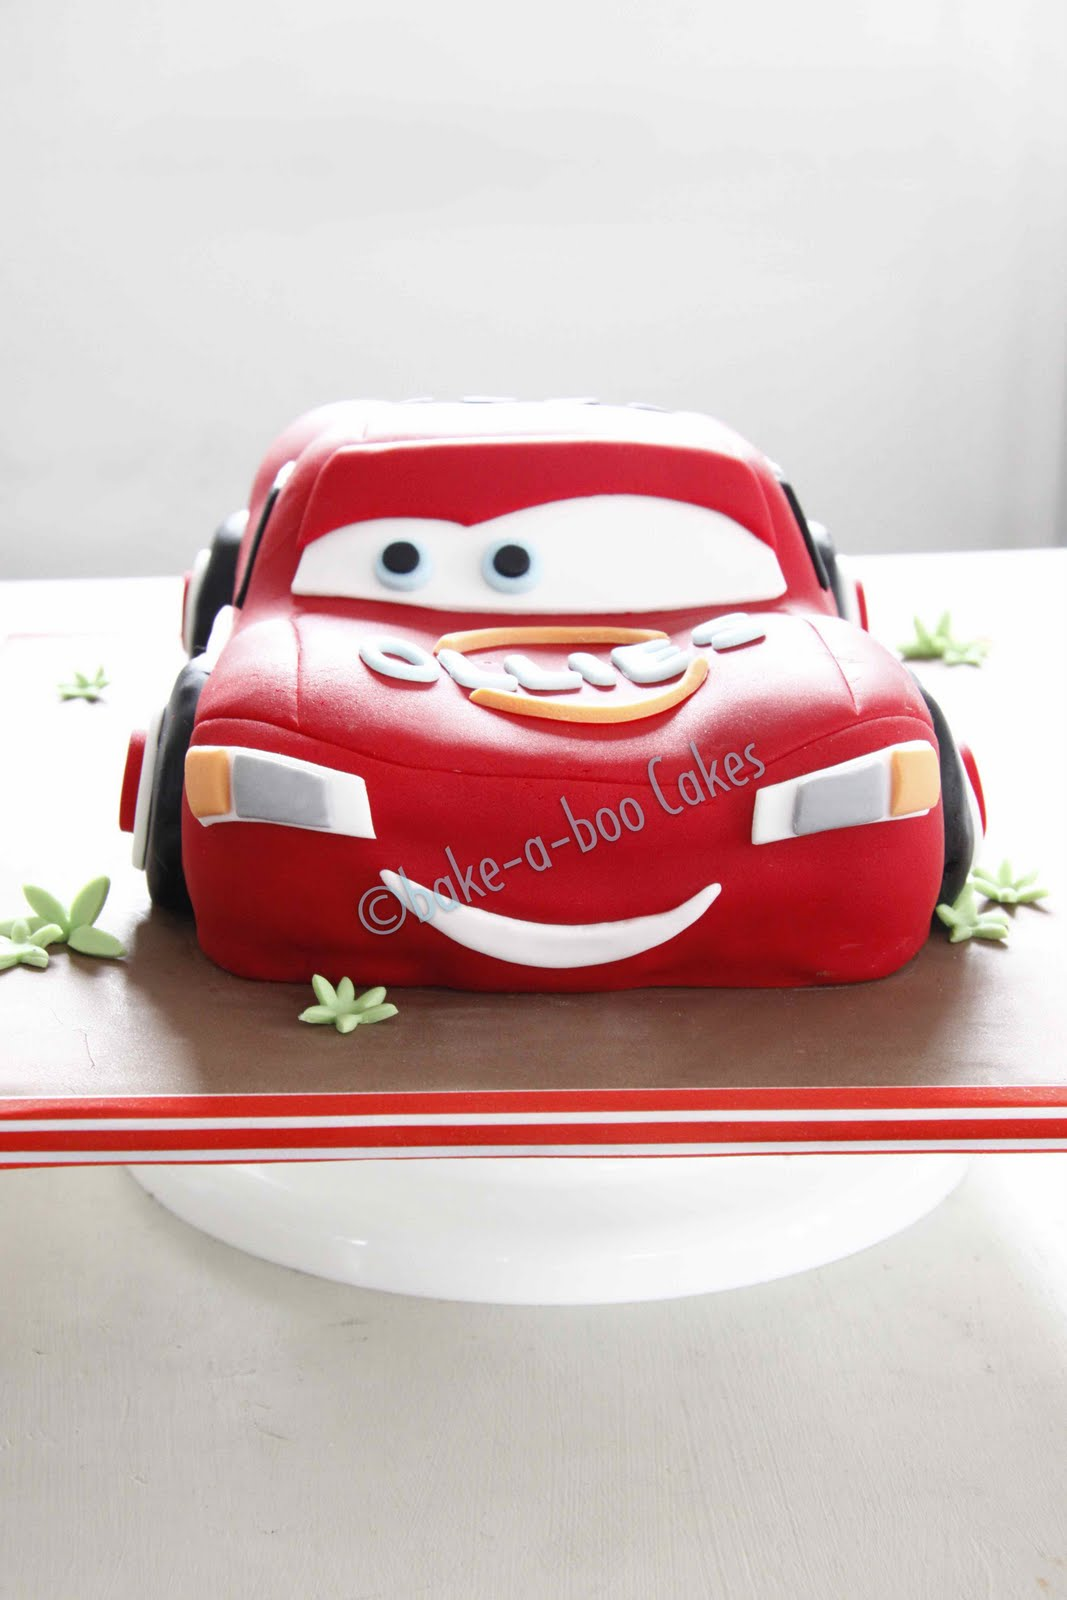 bake-a-boo: Another Lighting McQueen Cake from Disney Cars ...